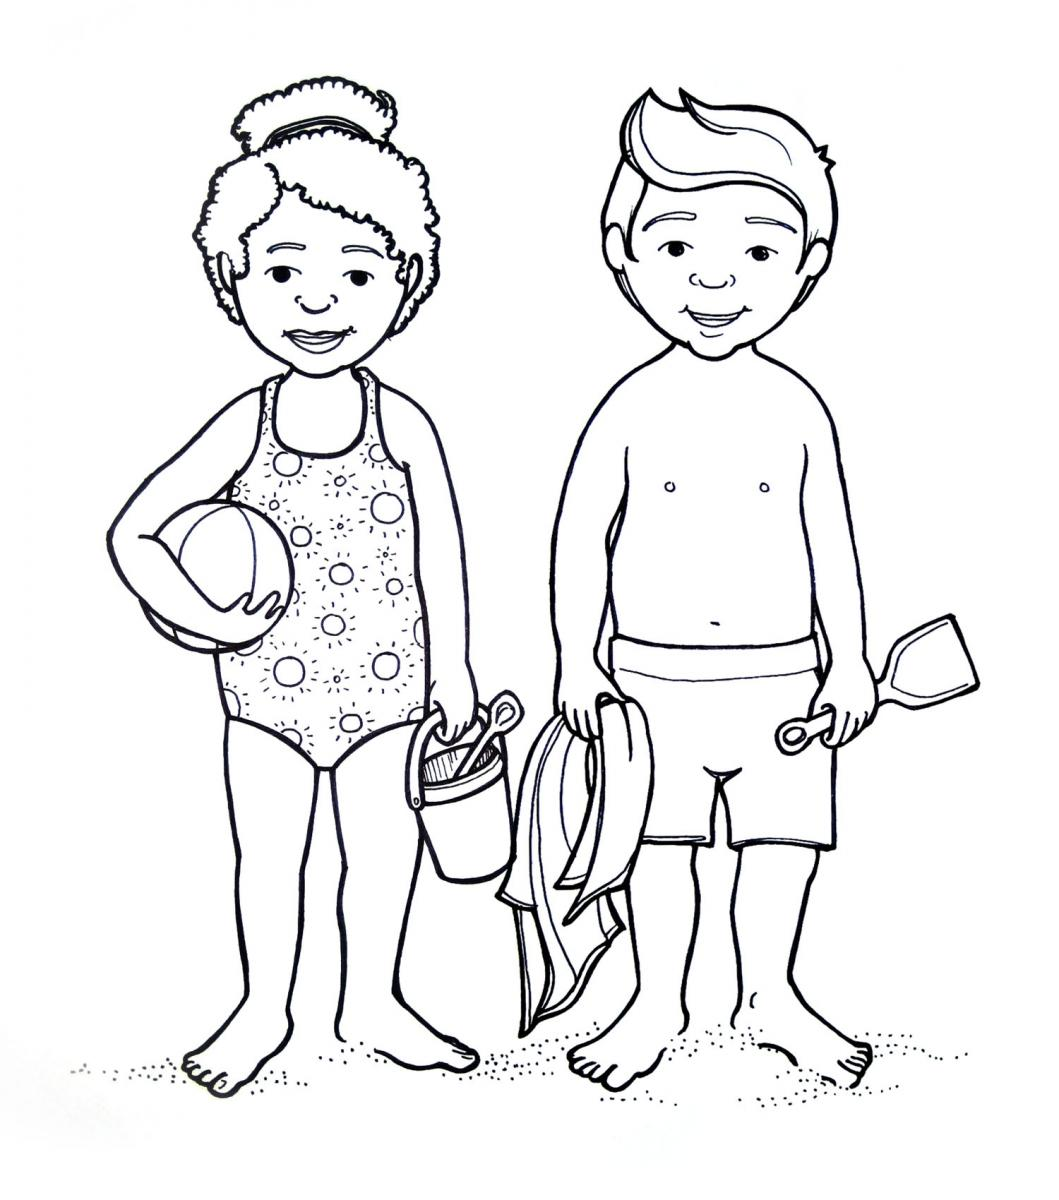 Bikini Coloring Pages At Getcolorings